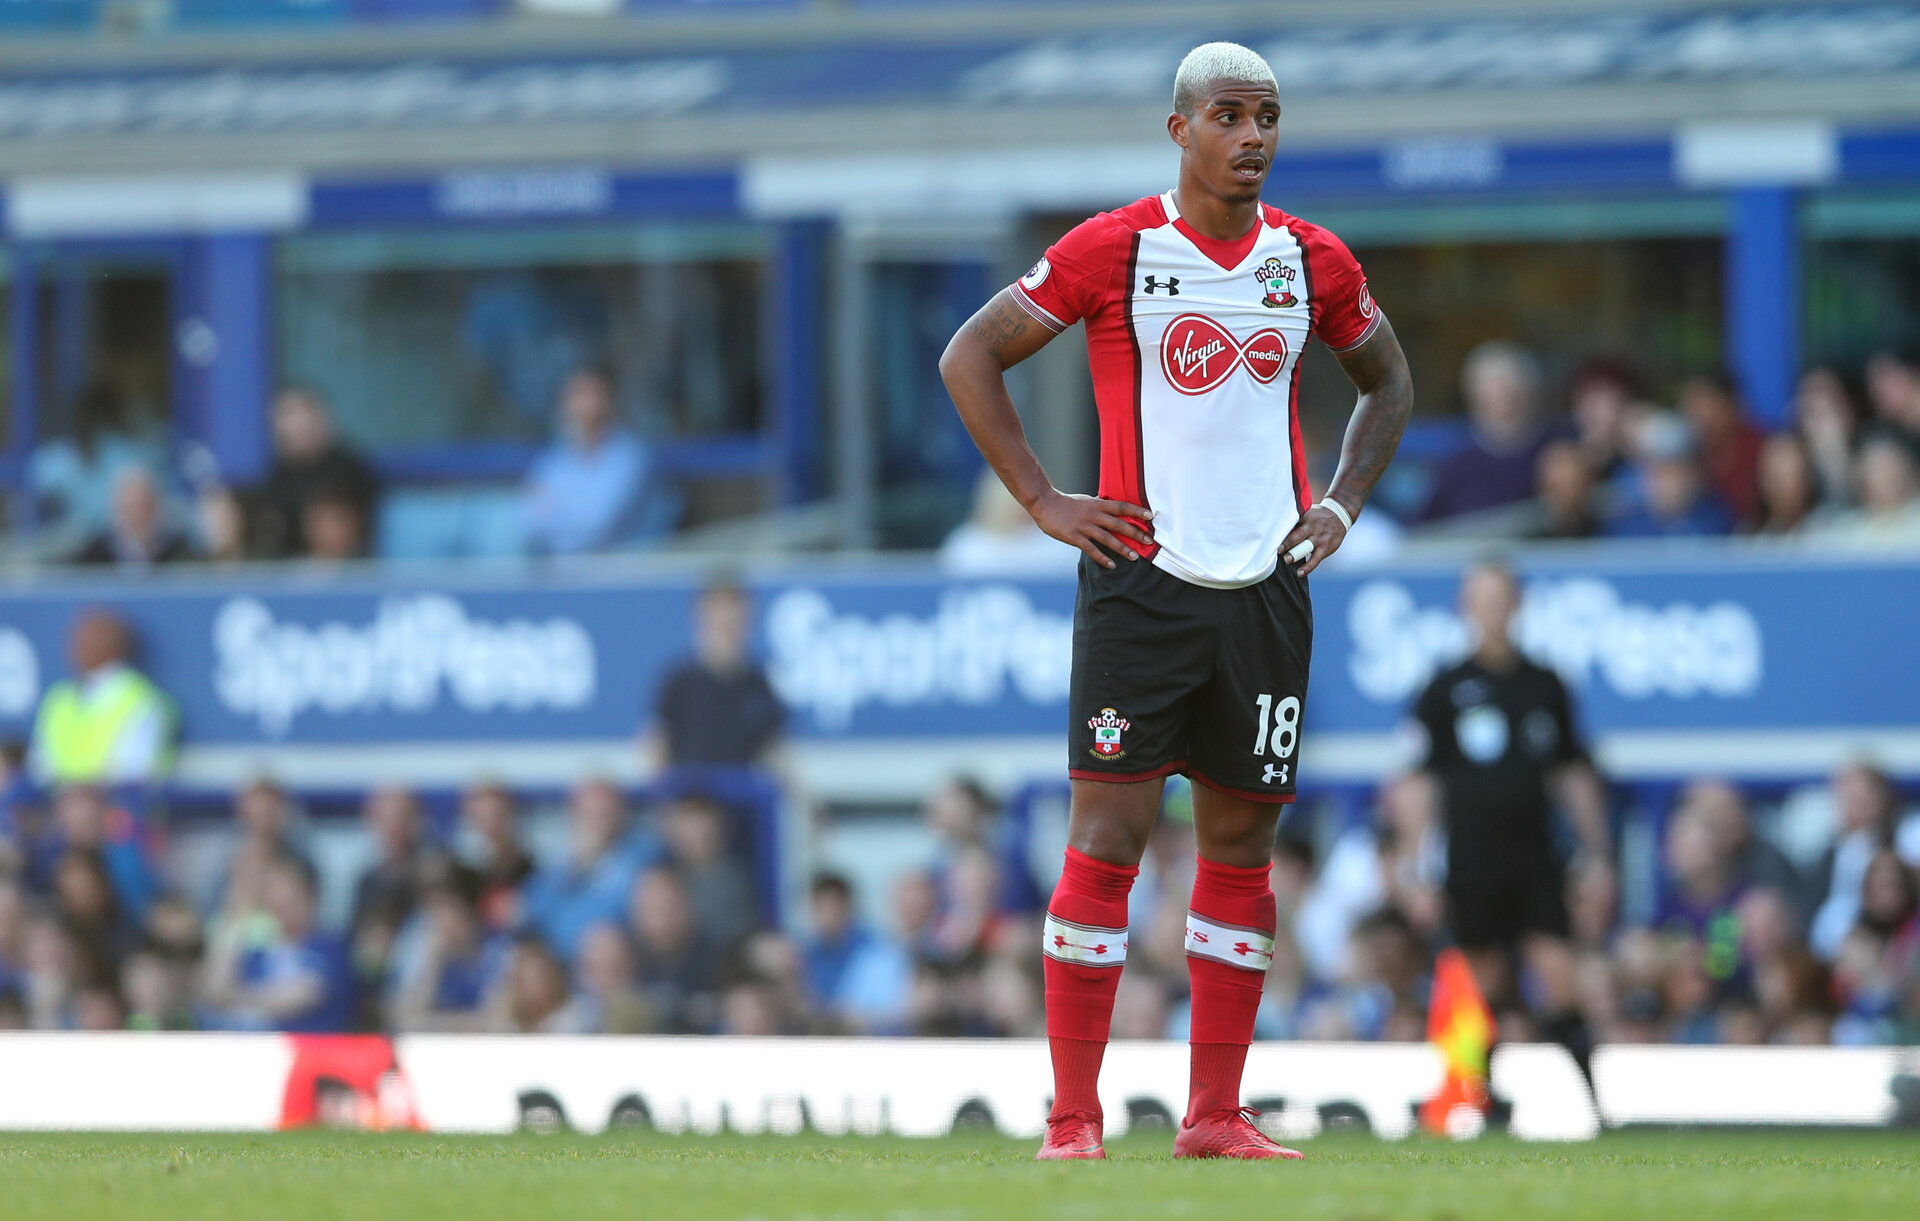 LIVERPOOL, ENGLAND - MAY 05: Mario Lemina of Southampton during the Premier League match between Everton and Southampton at Goodison Park on May 5, 2018 in Liverpool, England. (Photo by Matt Watson/Southampton FC via Getty Images)